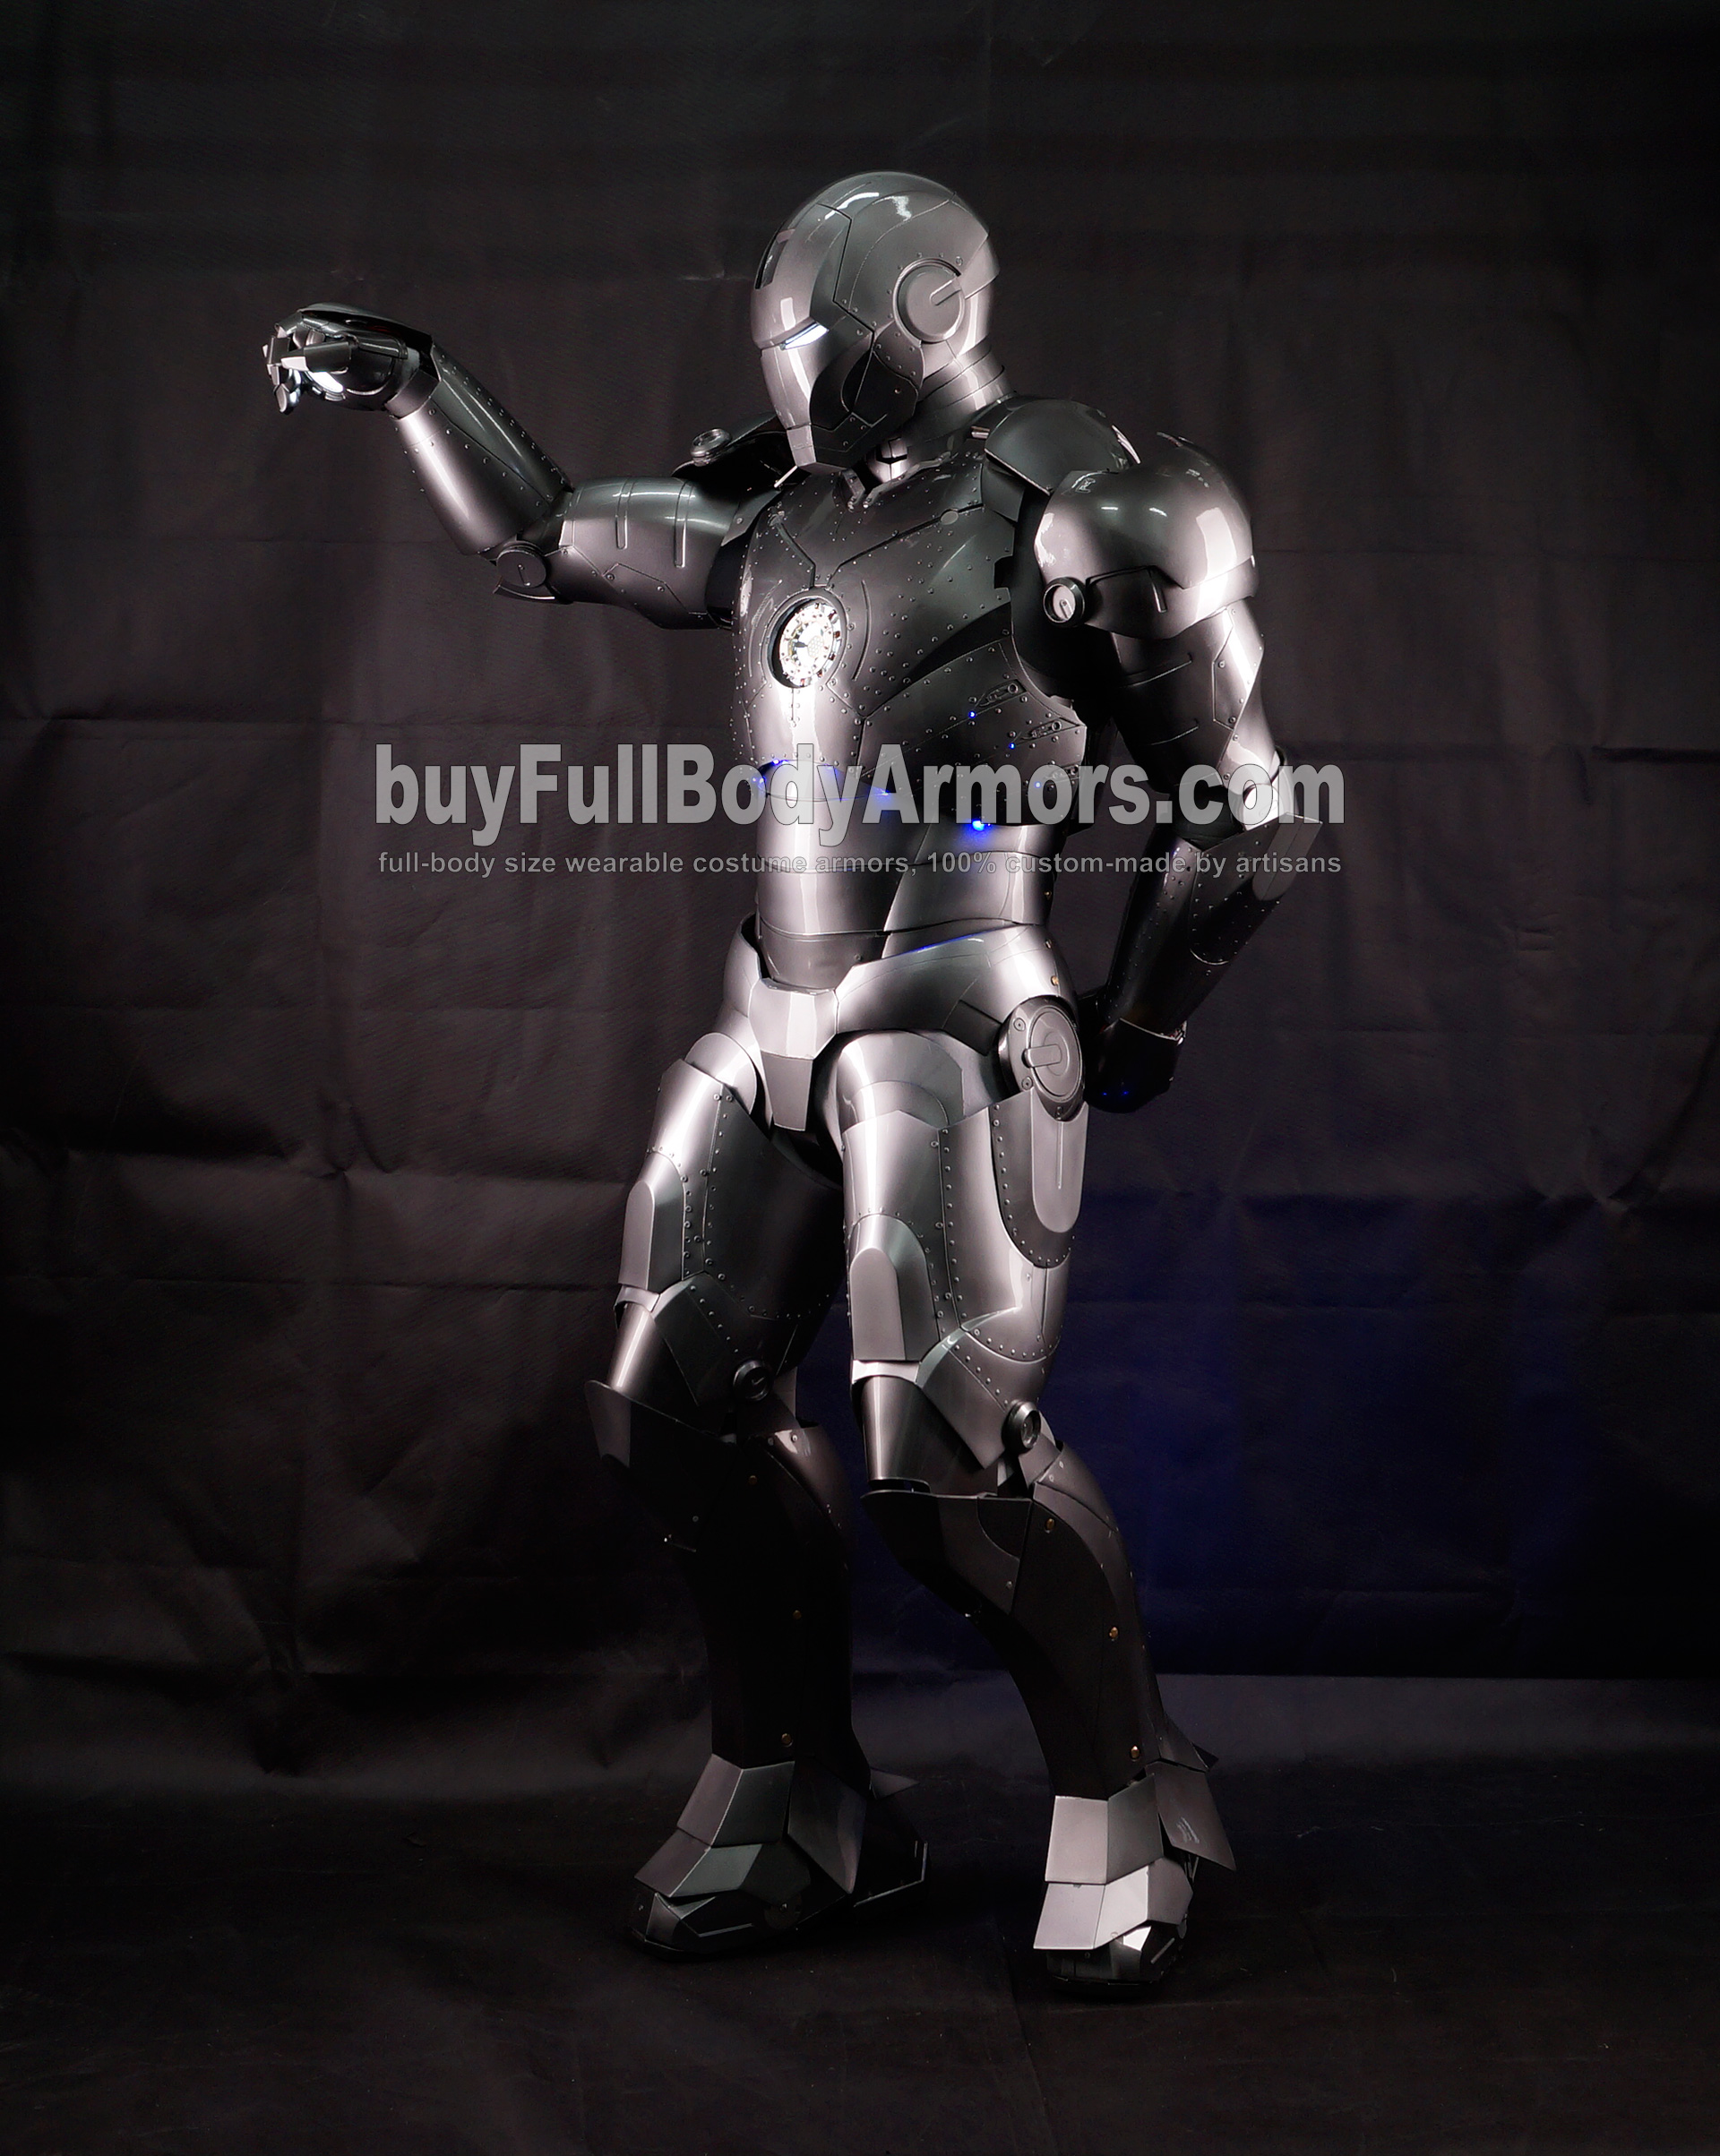 High Definition Photos of the Wearable Iron Man Mark 2 II Armor Costume Suit 7